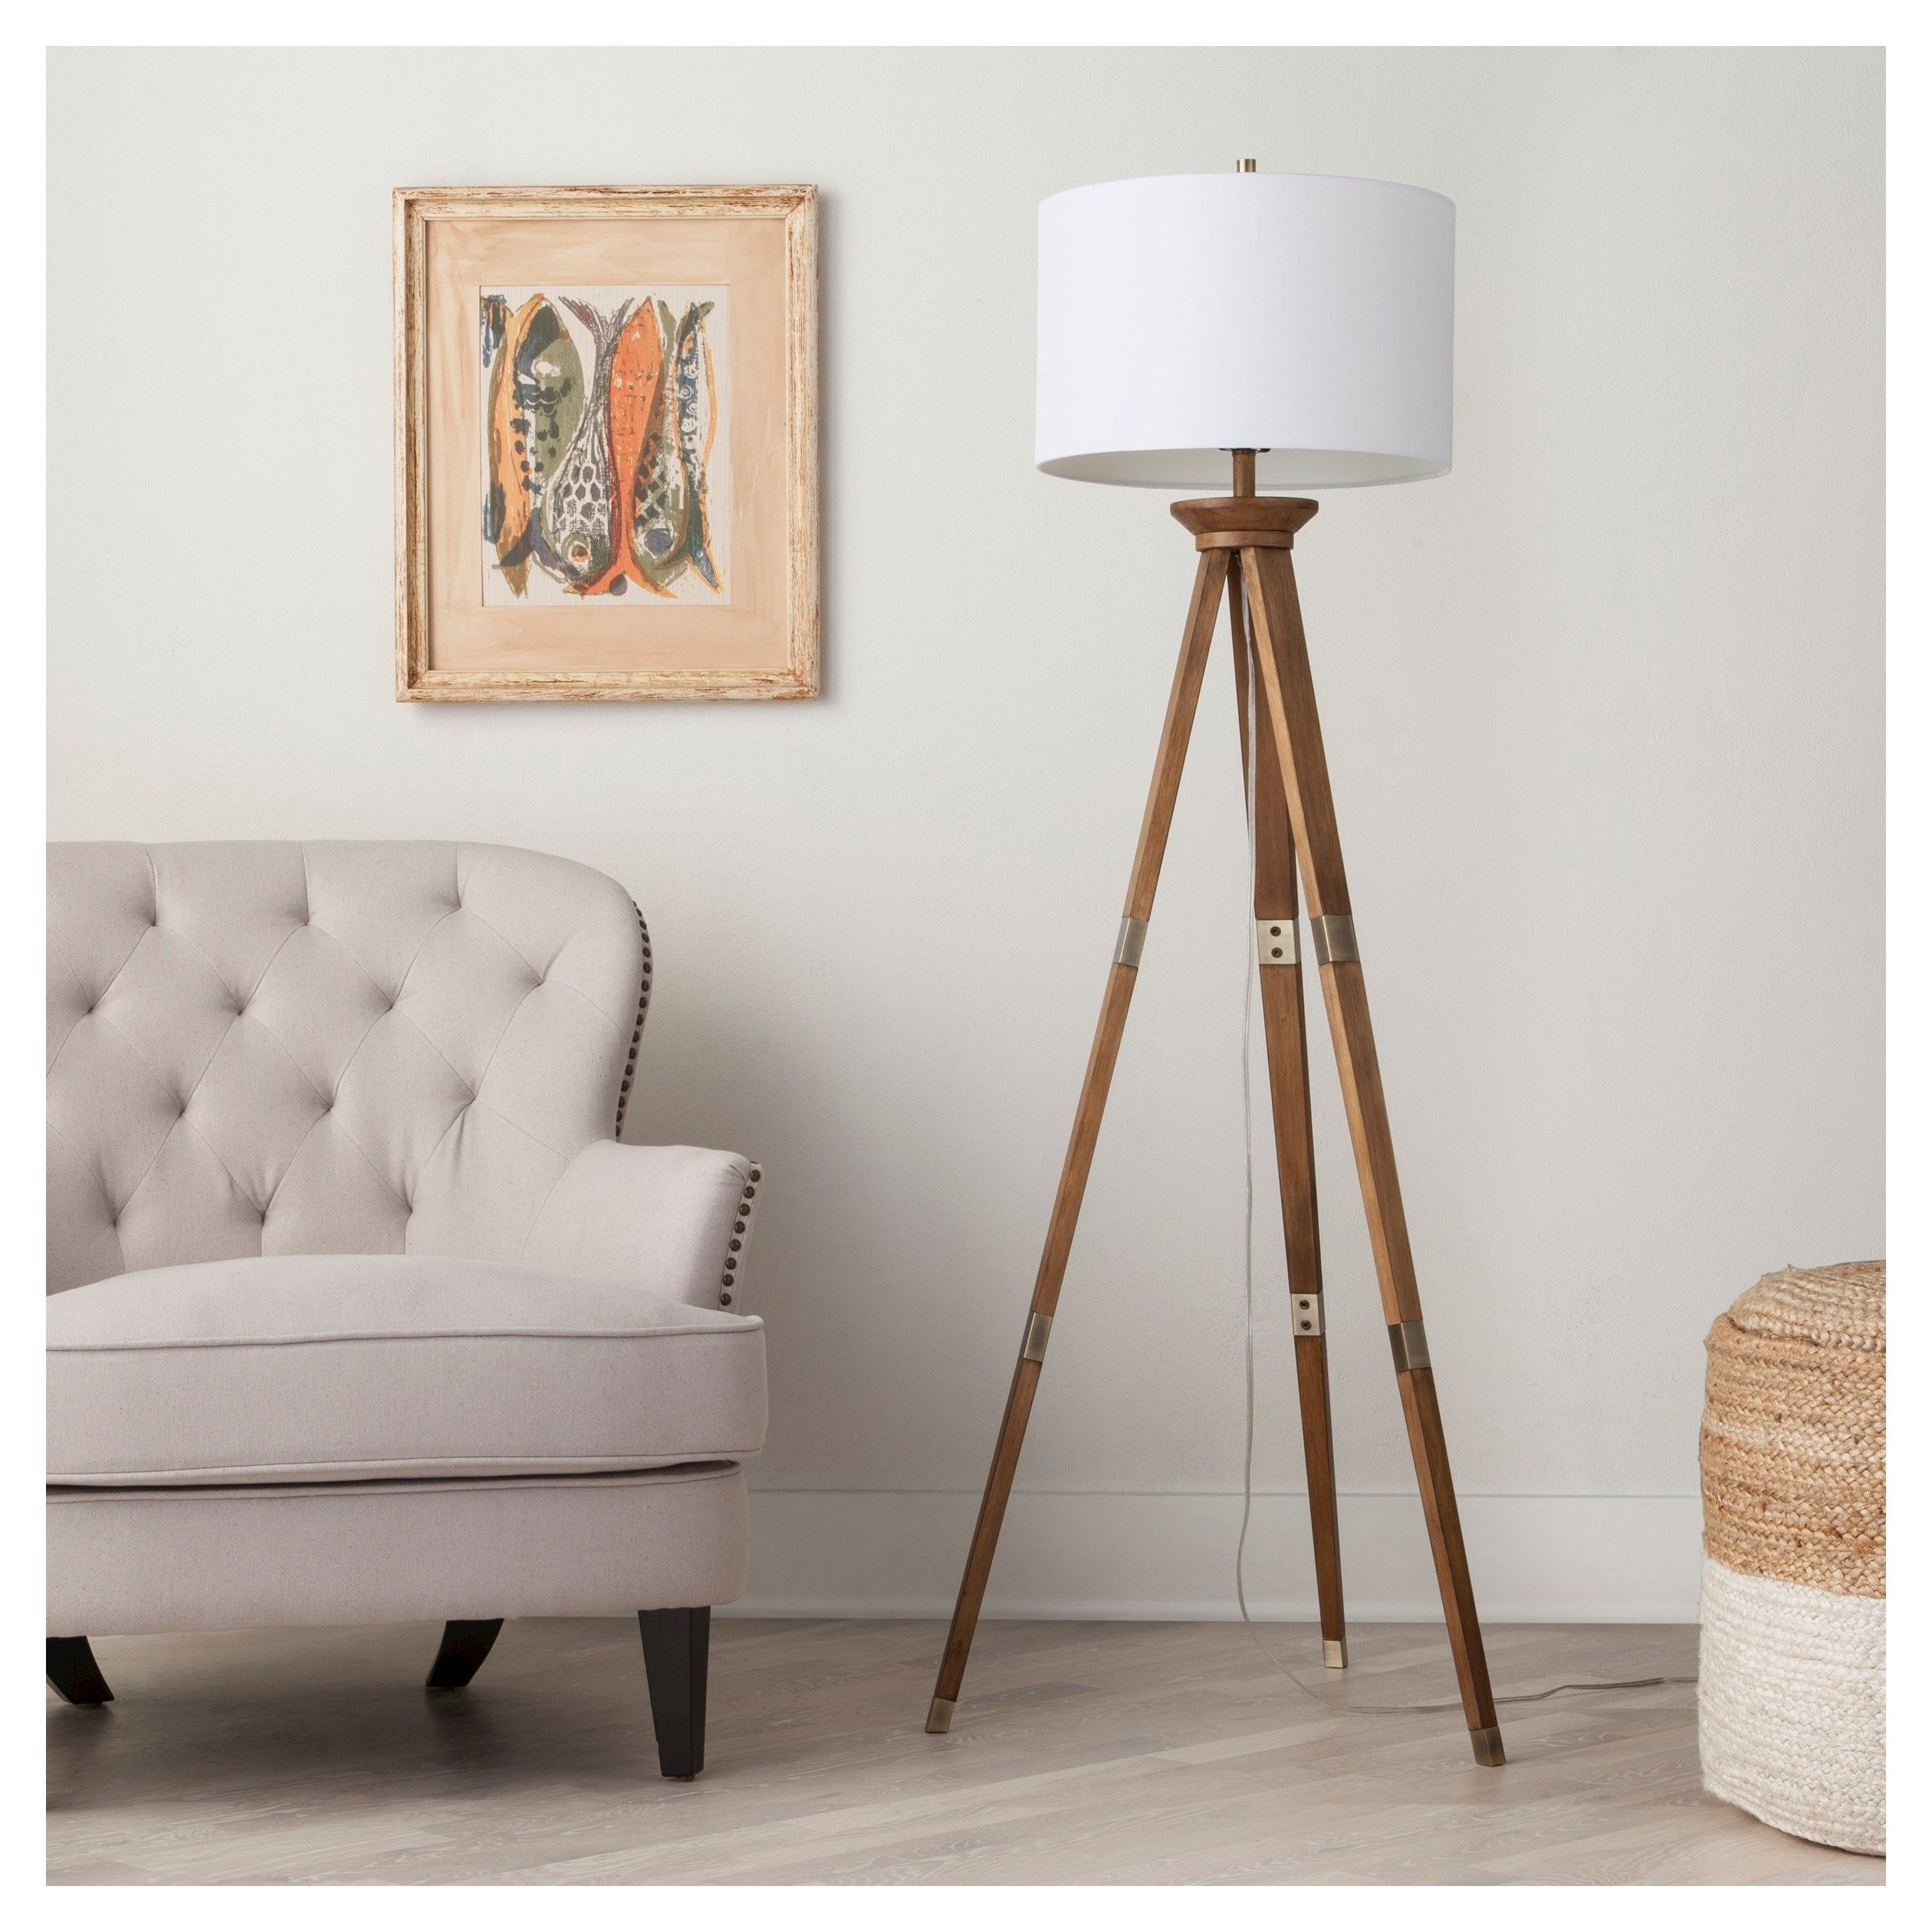 Standing Tall And Strong On 3 Slender Legs The Threshold Oak Wood Tripod Floor Lamp Brings